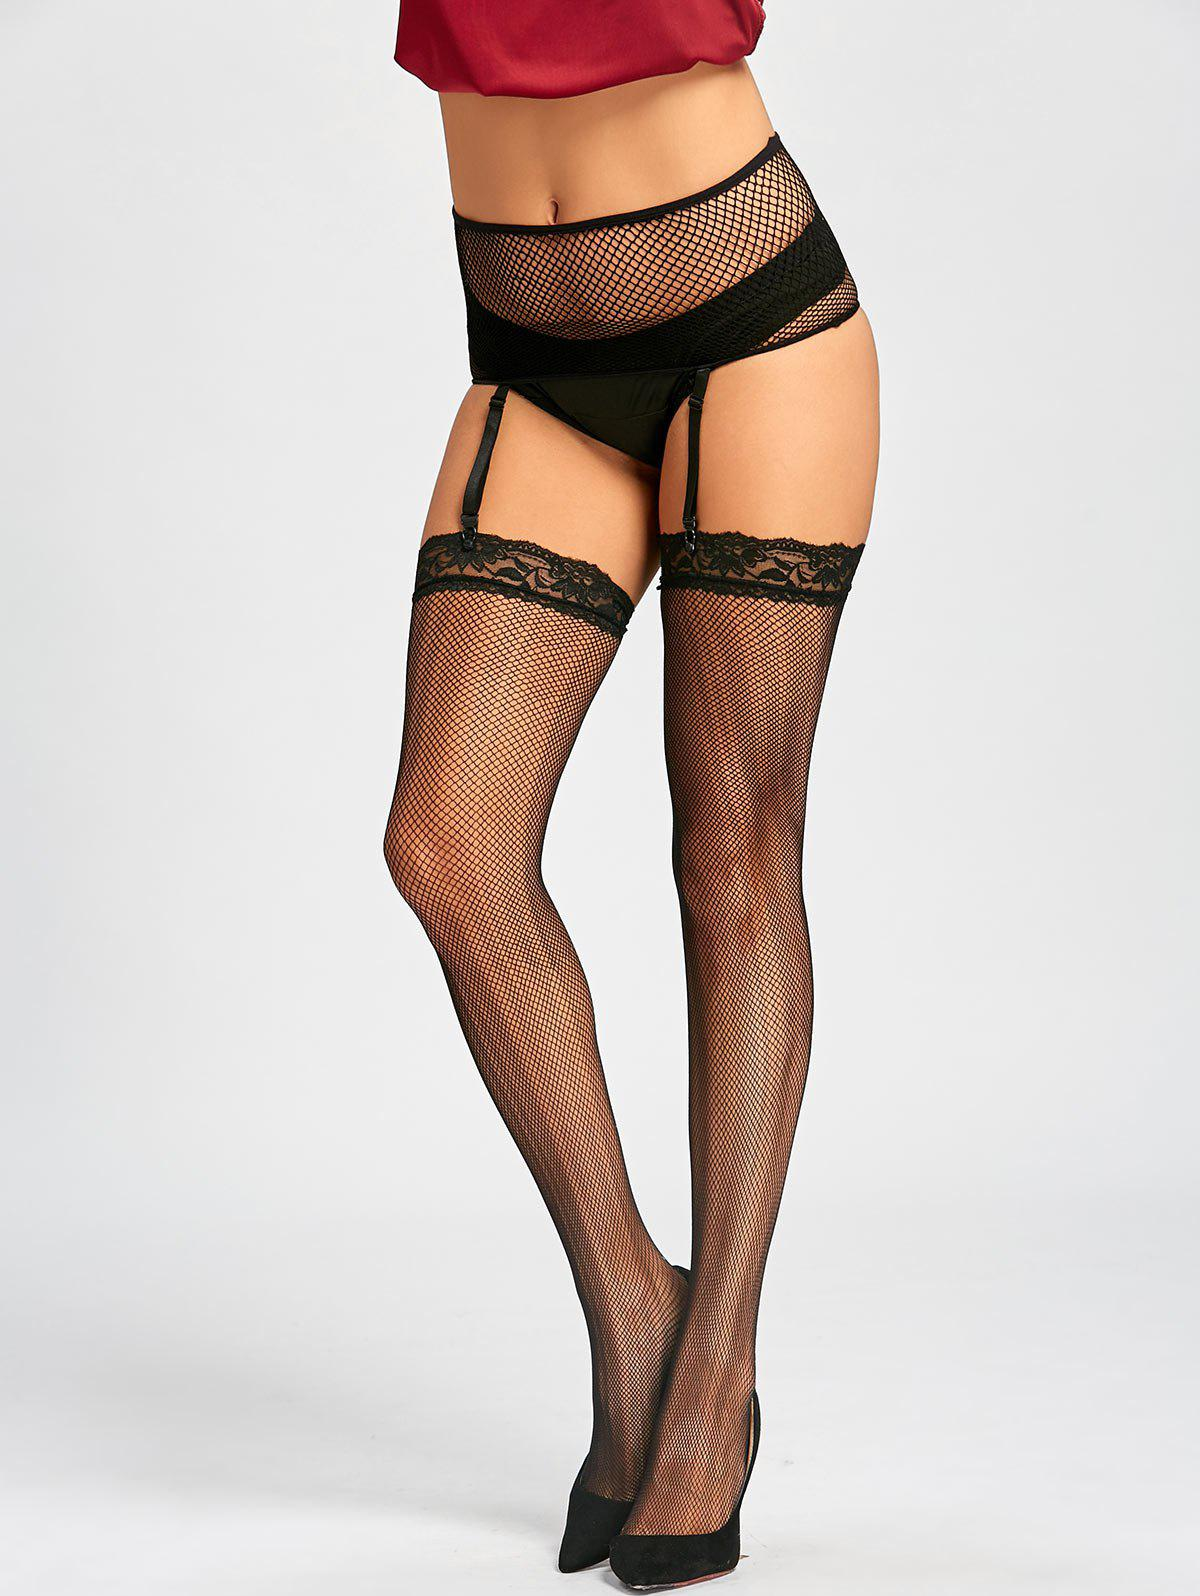 Fishnet See Through Garter Stockings see through fishnet pantyhose